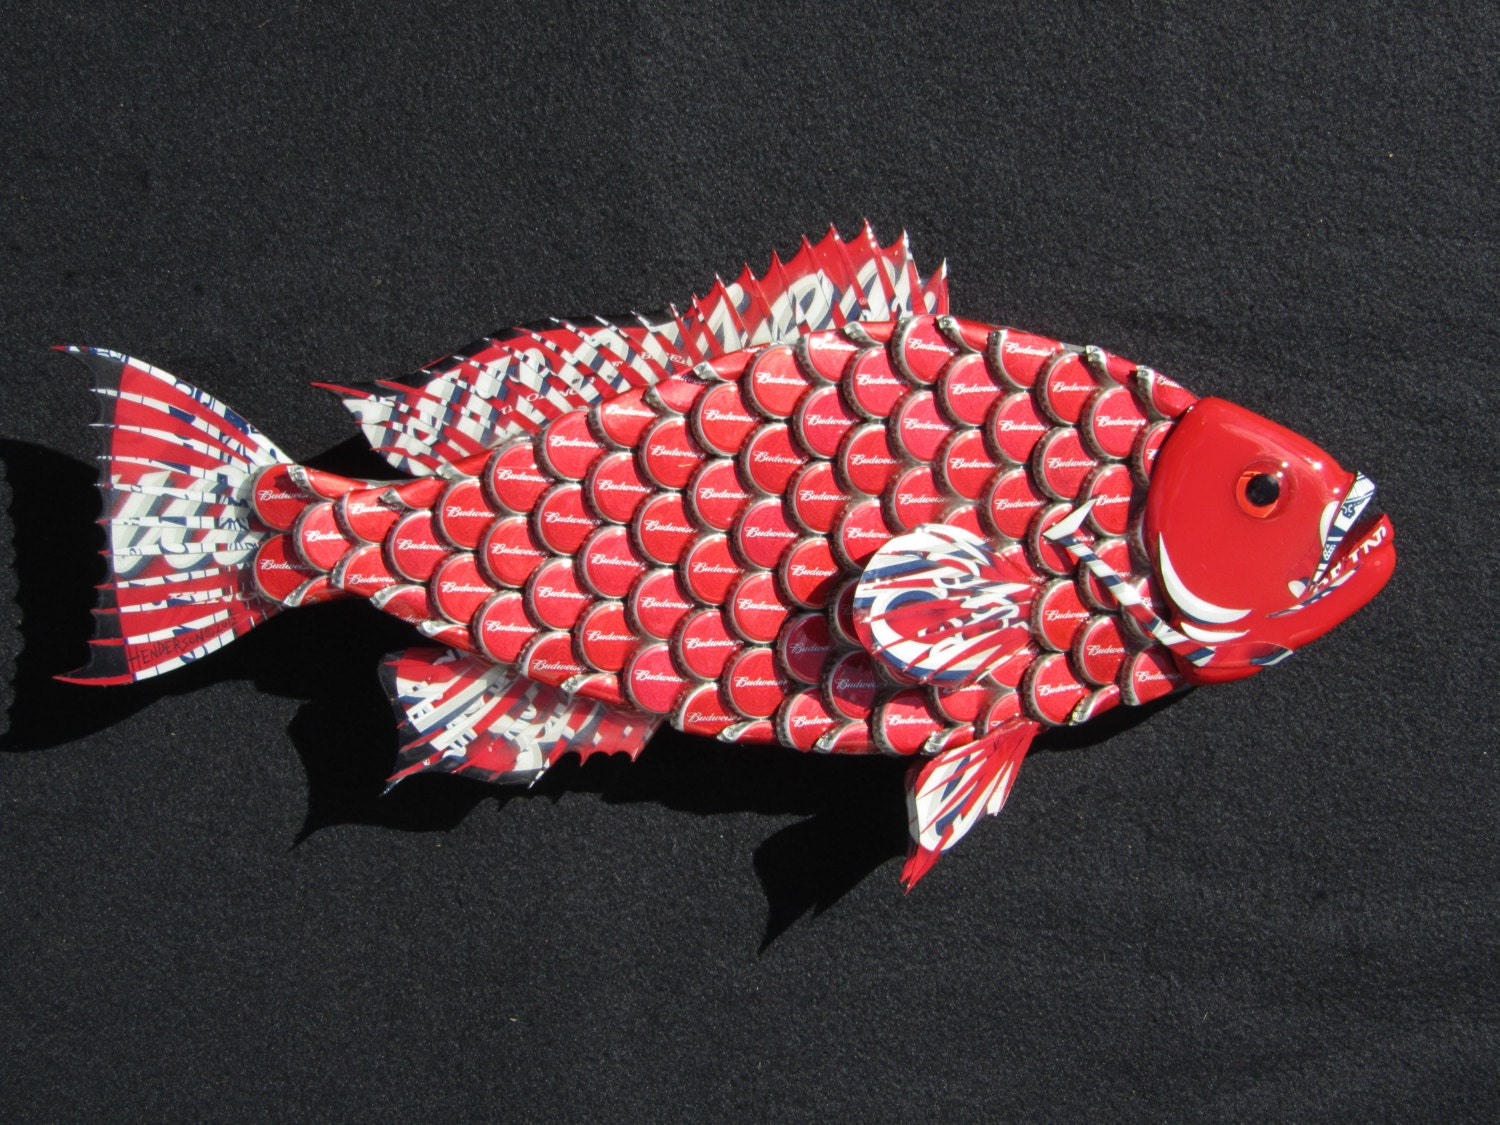 Metal bottle cap fish wall art small budweiser bottlecap red for What can i make with bottle caps